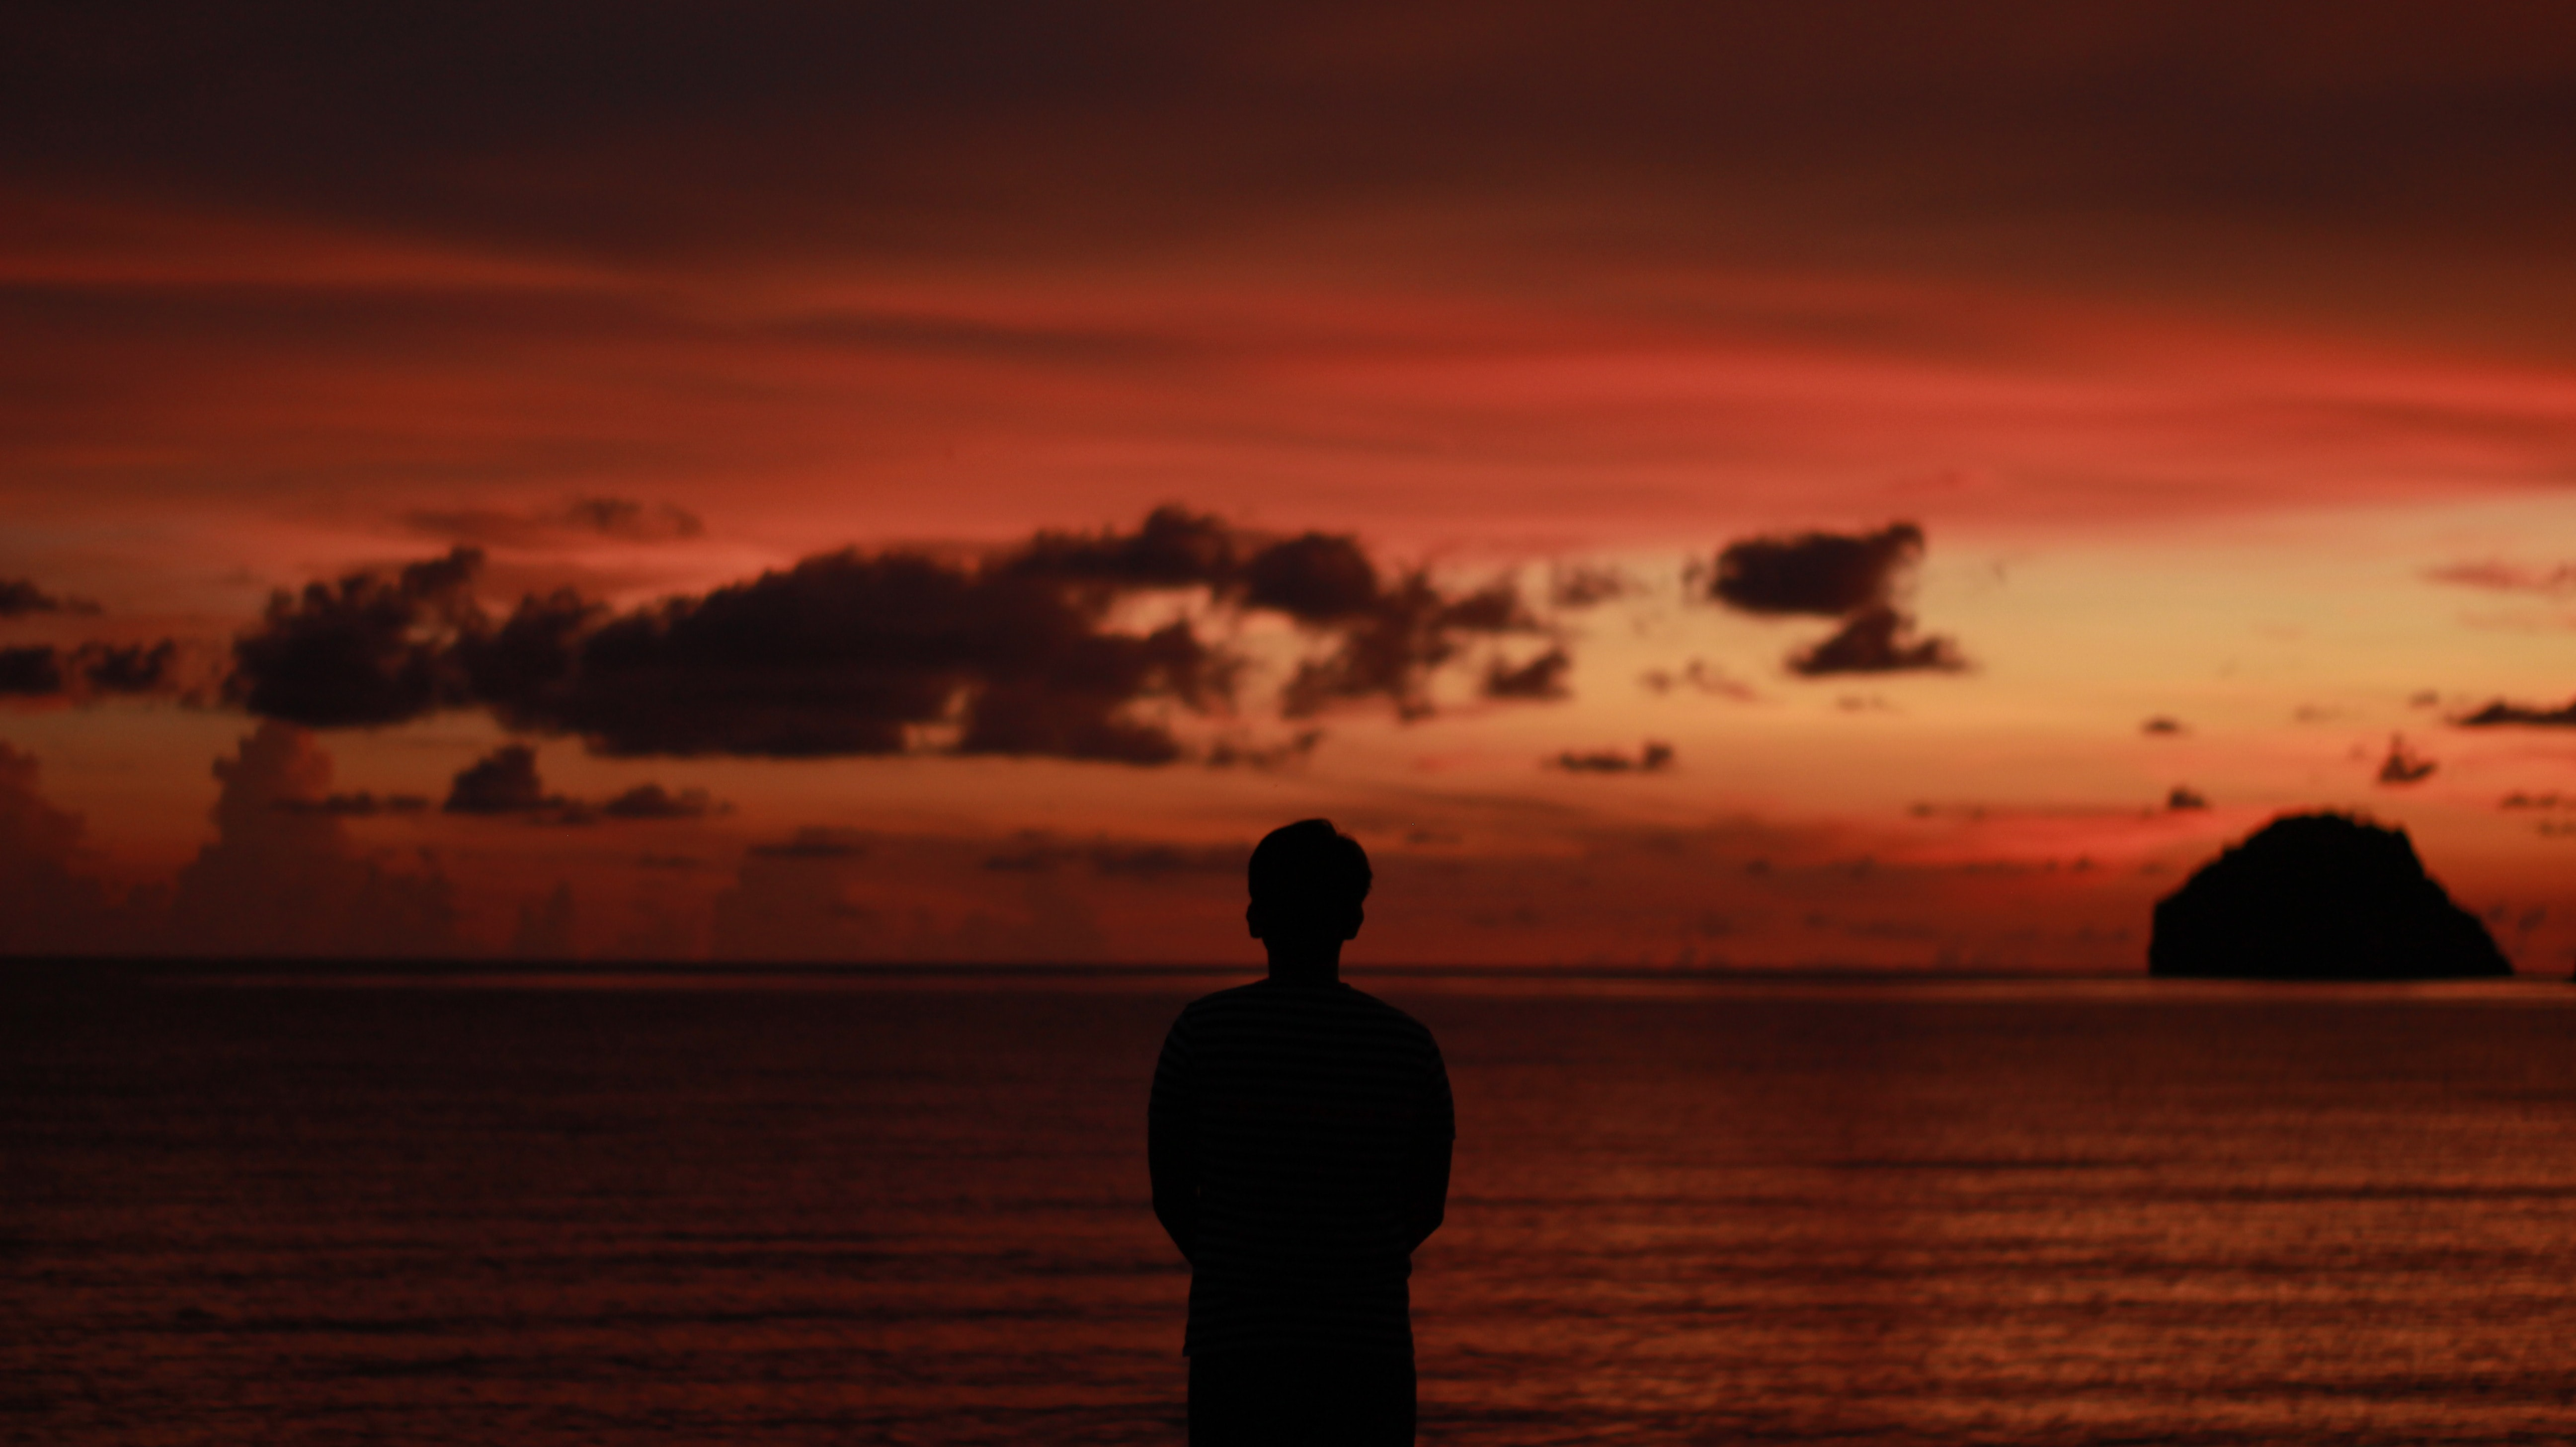 silhouette person staring at the ocean during sunset